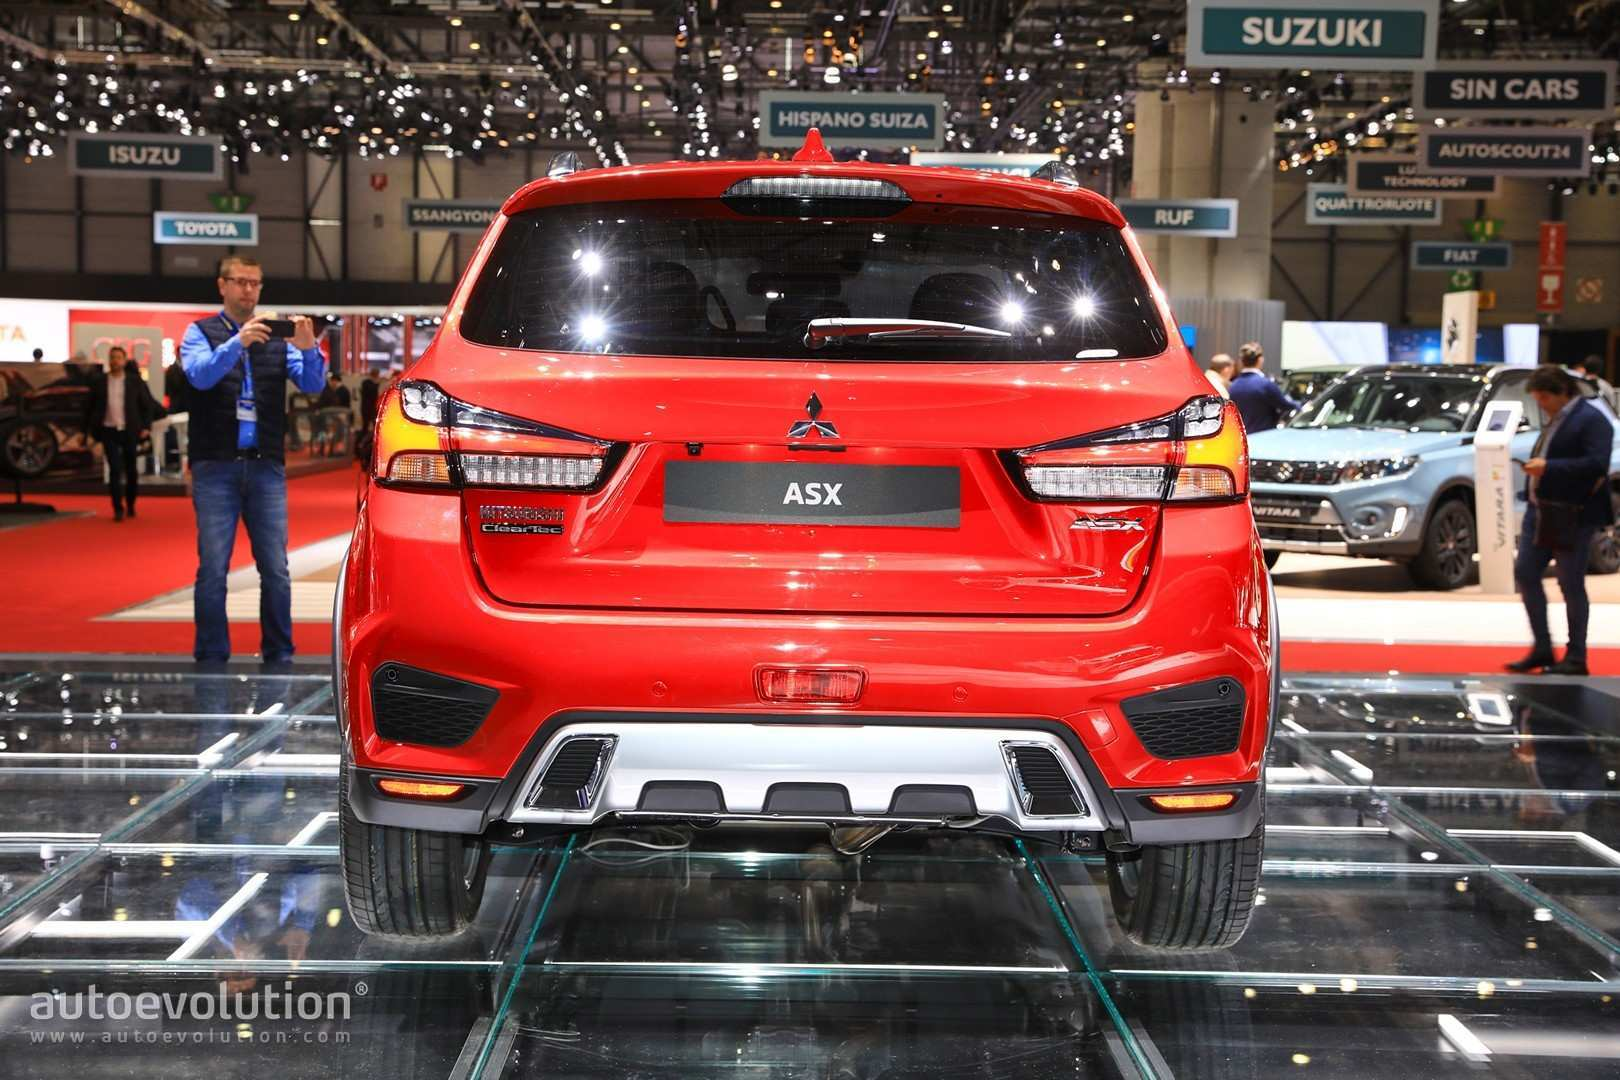 79 All New Mitsubishi Asx Facelift 2020 Speed Test with Mitsubishi Asx Facelift 2020